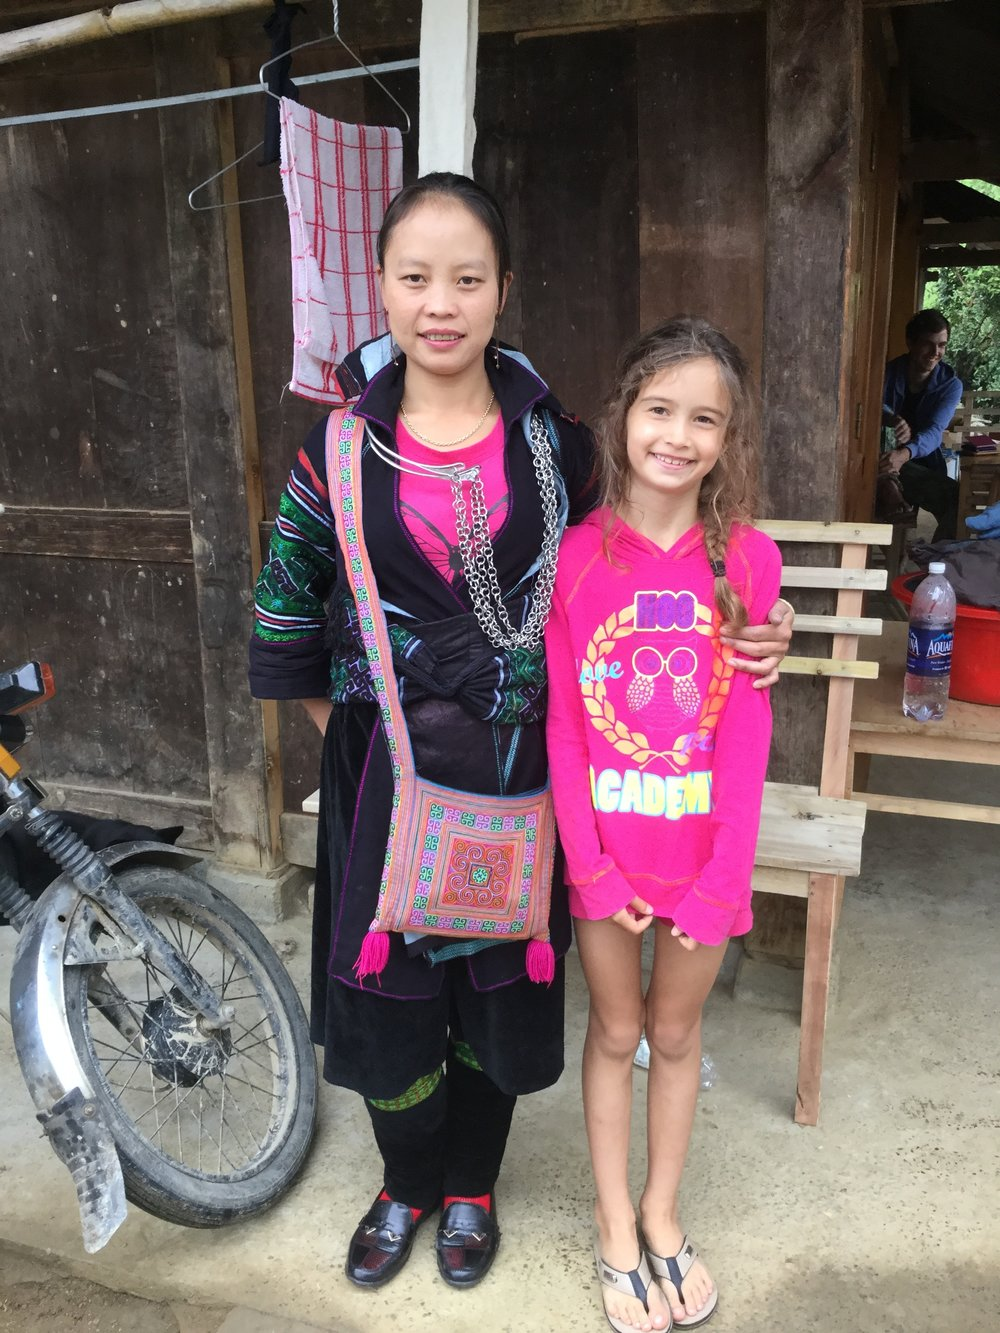 Lili and Zizi, our host. Zizi is dressed in the traditional Black Hmong costume - she was actually going to a wedding today.